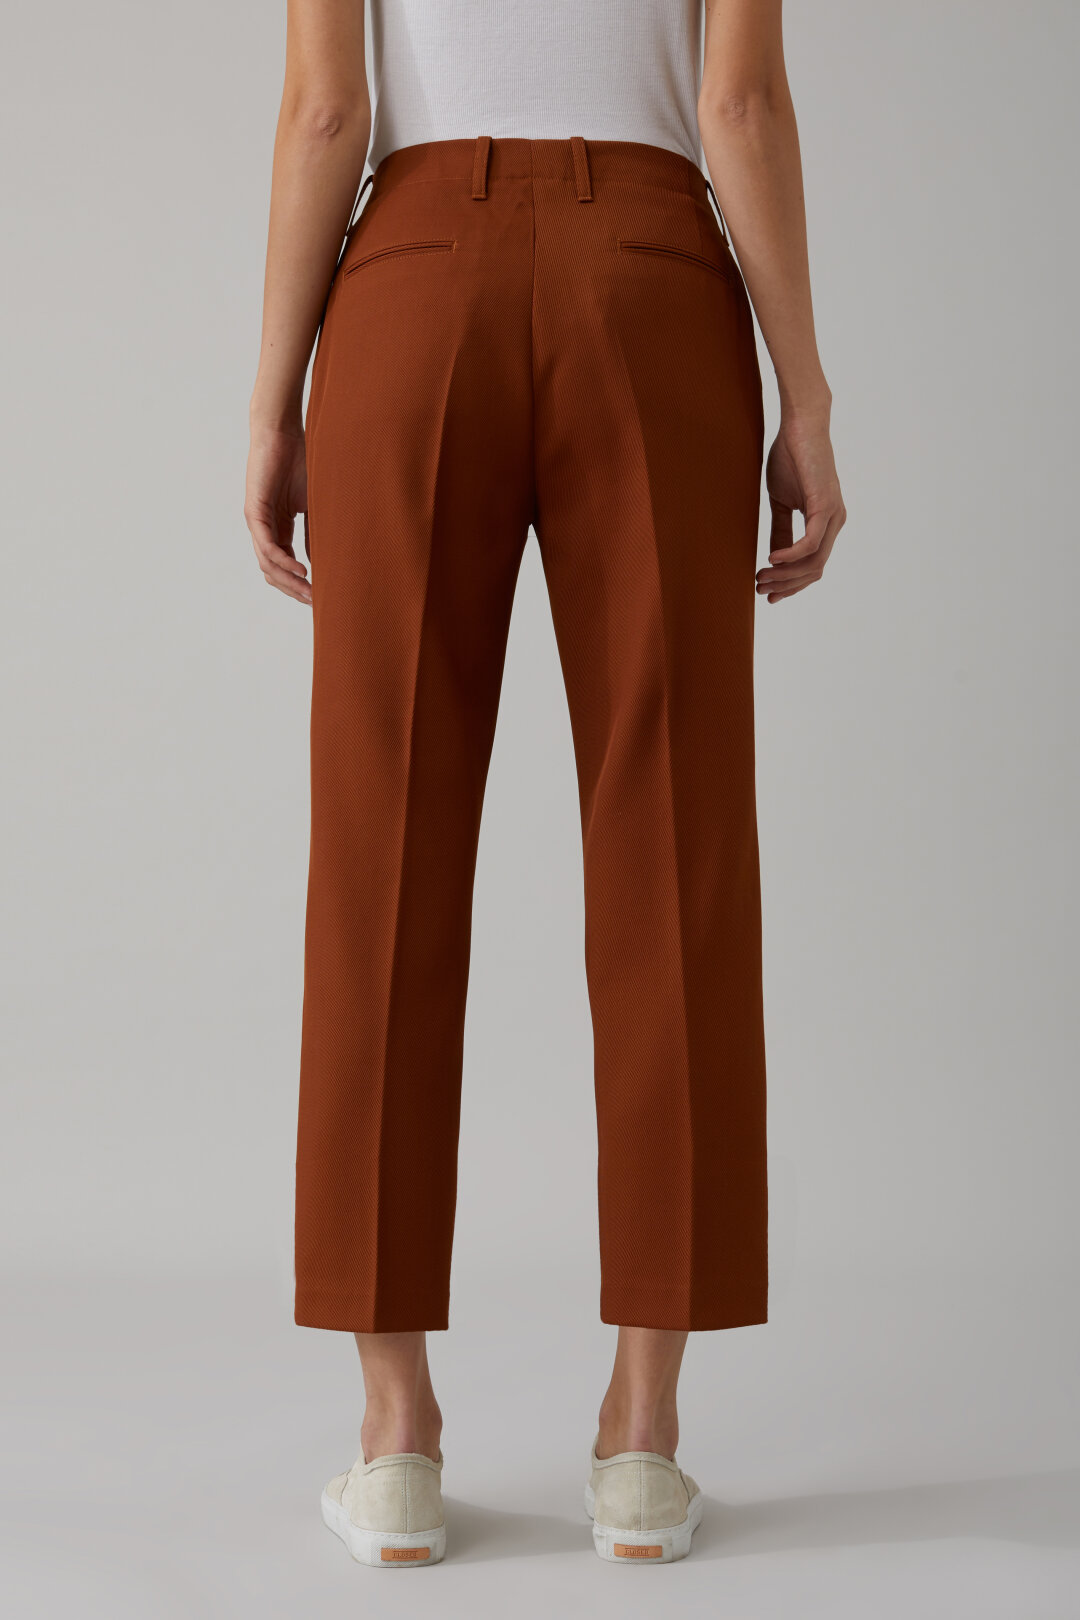 Pantalon Bertha